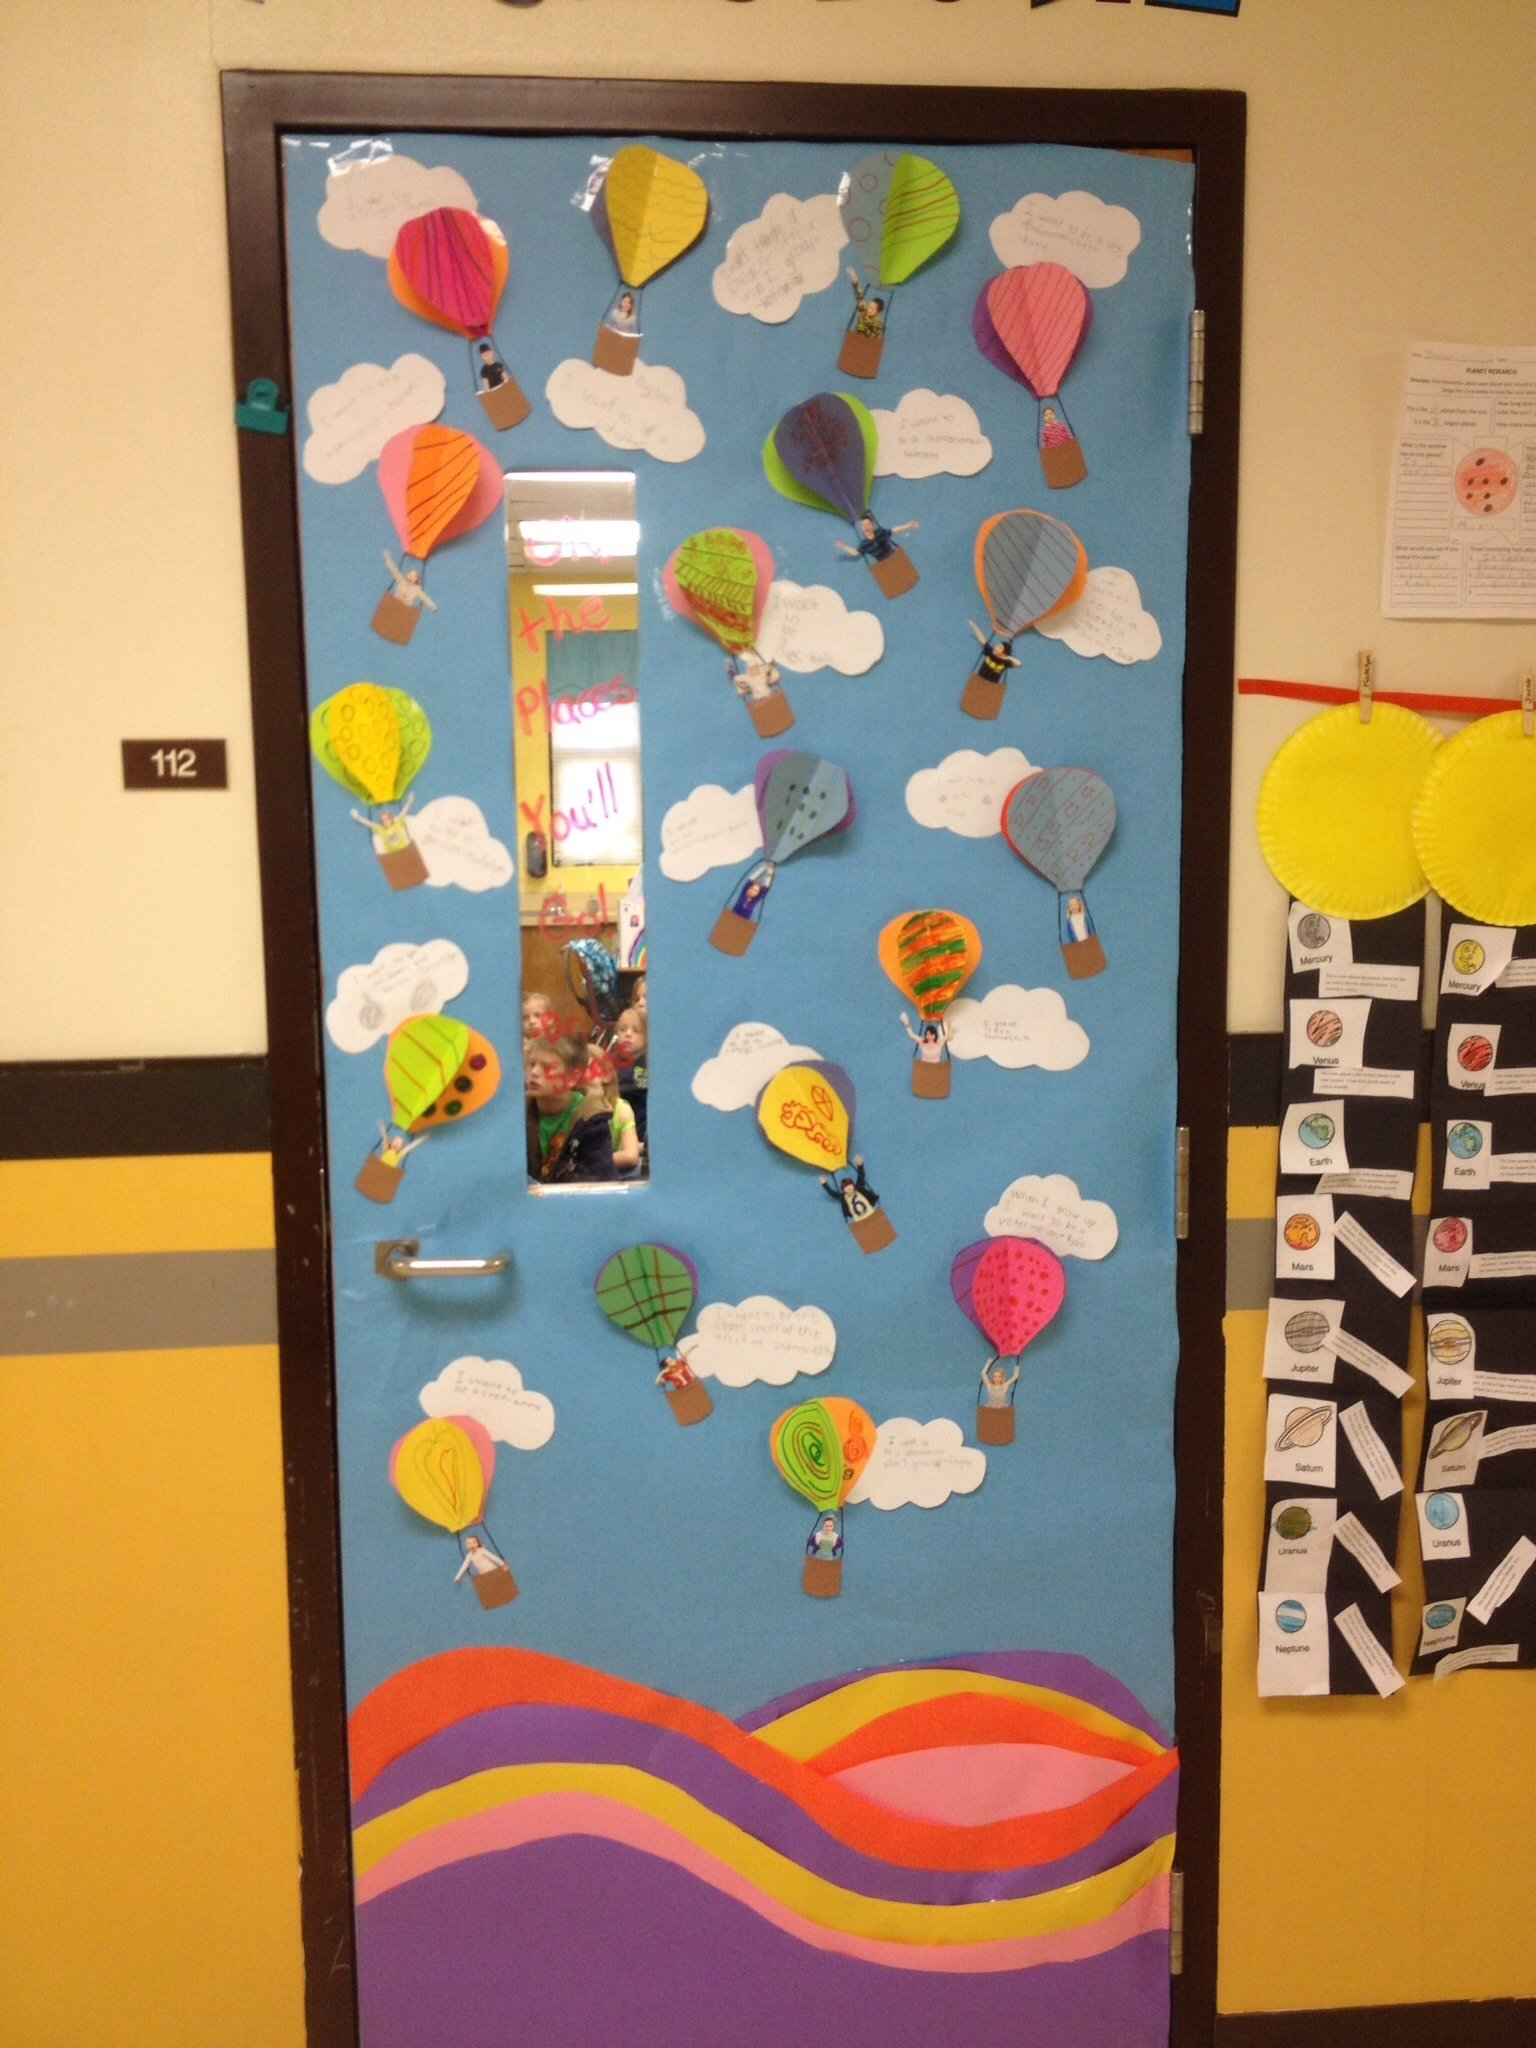 10 Most Popular Dr. Seuss Door Decorating Ideas dr seuss door decorating contest winner the hornets nest 2021